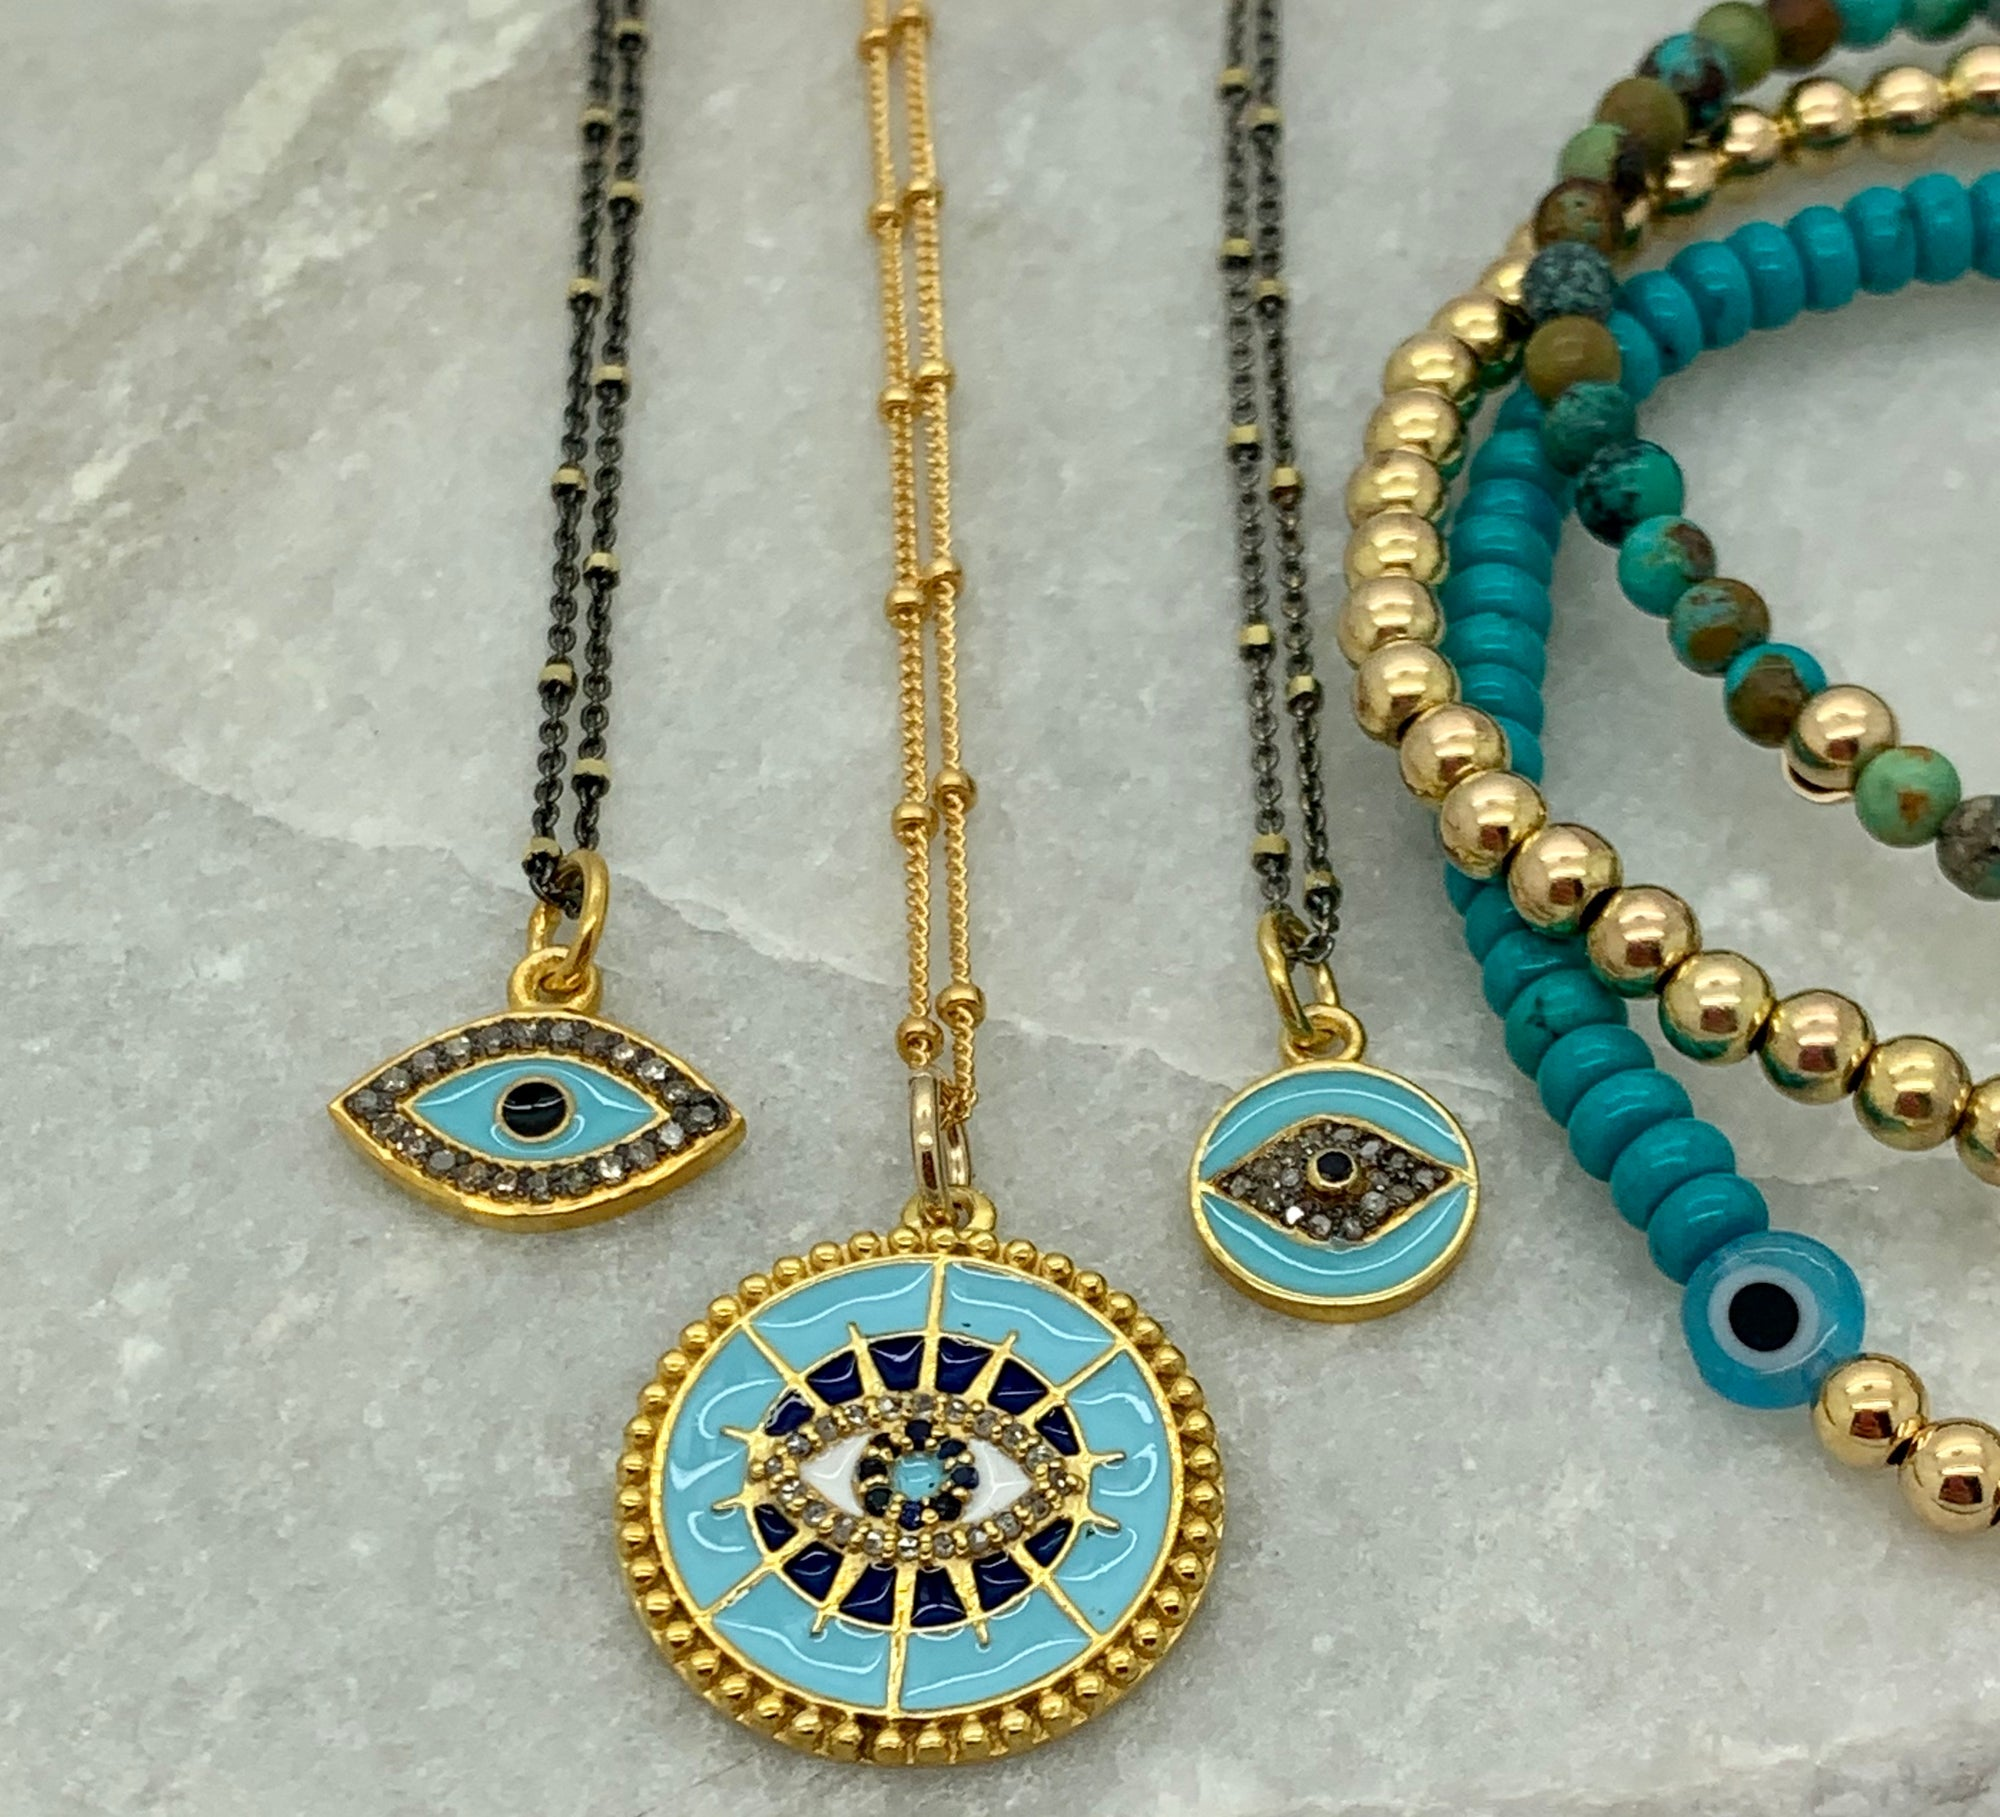 Enamel Eye Necklaces with Pave Diamonds